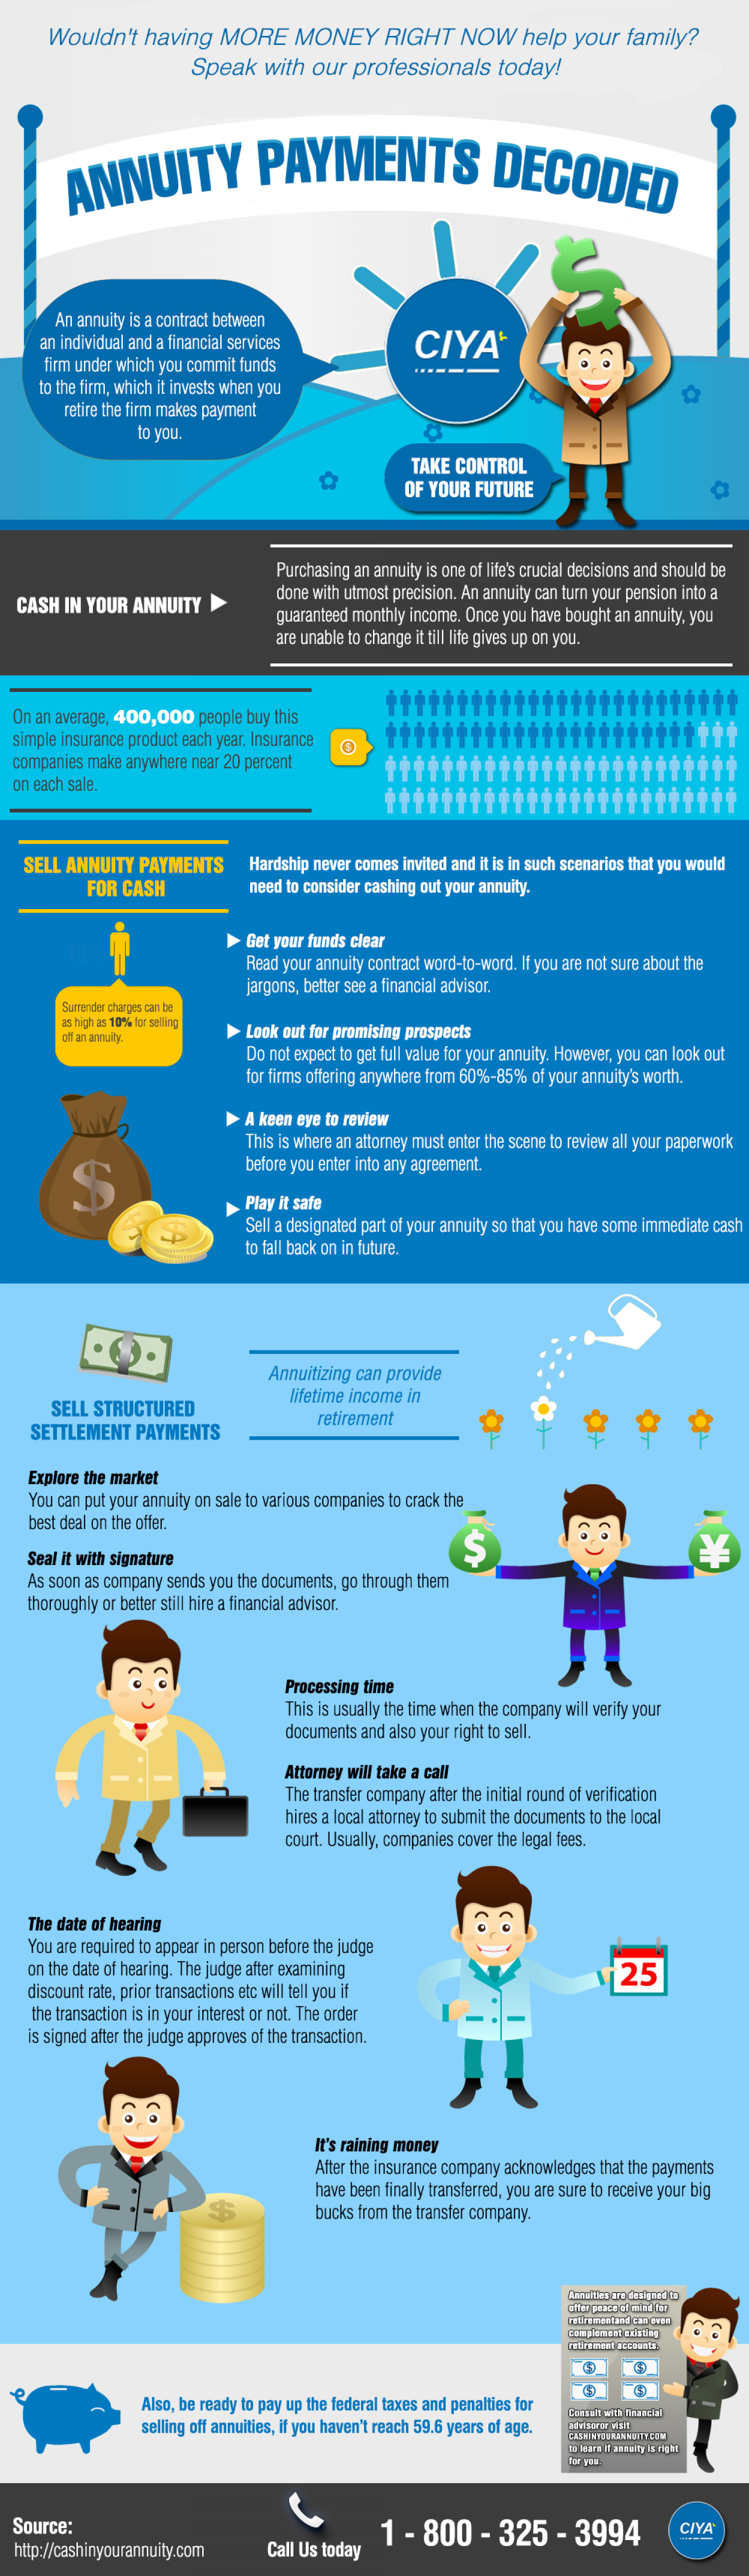 Annuity Payments Decoded Infographic